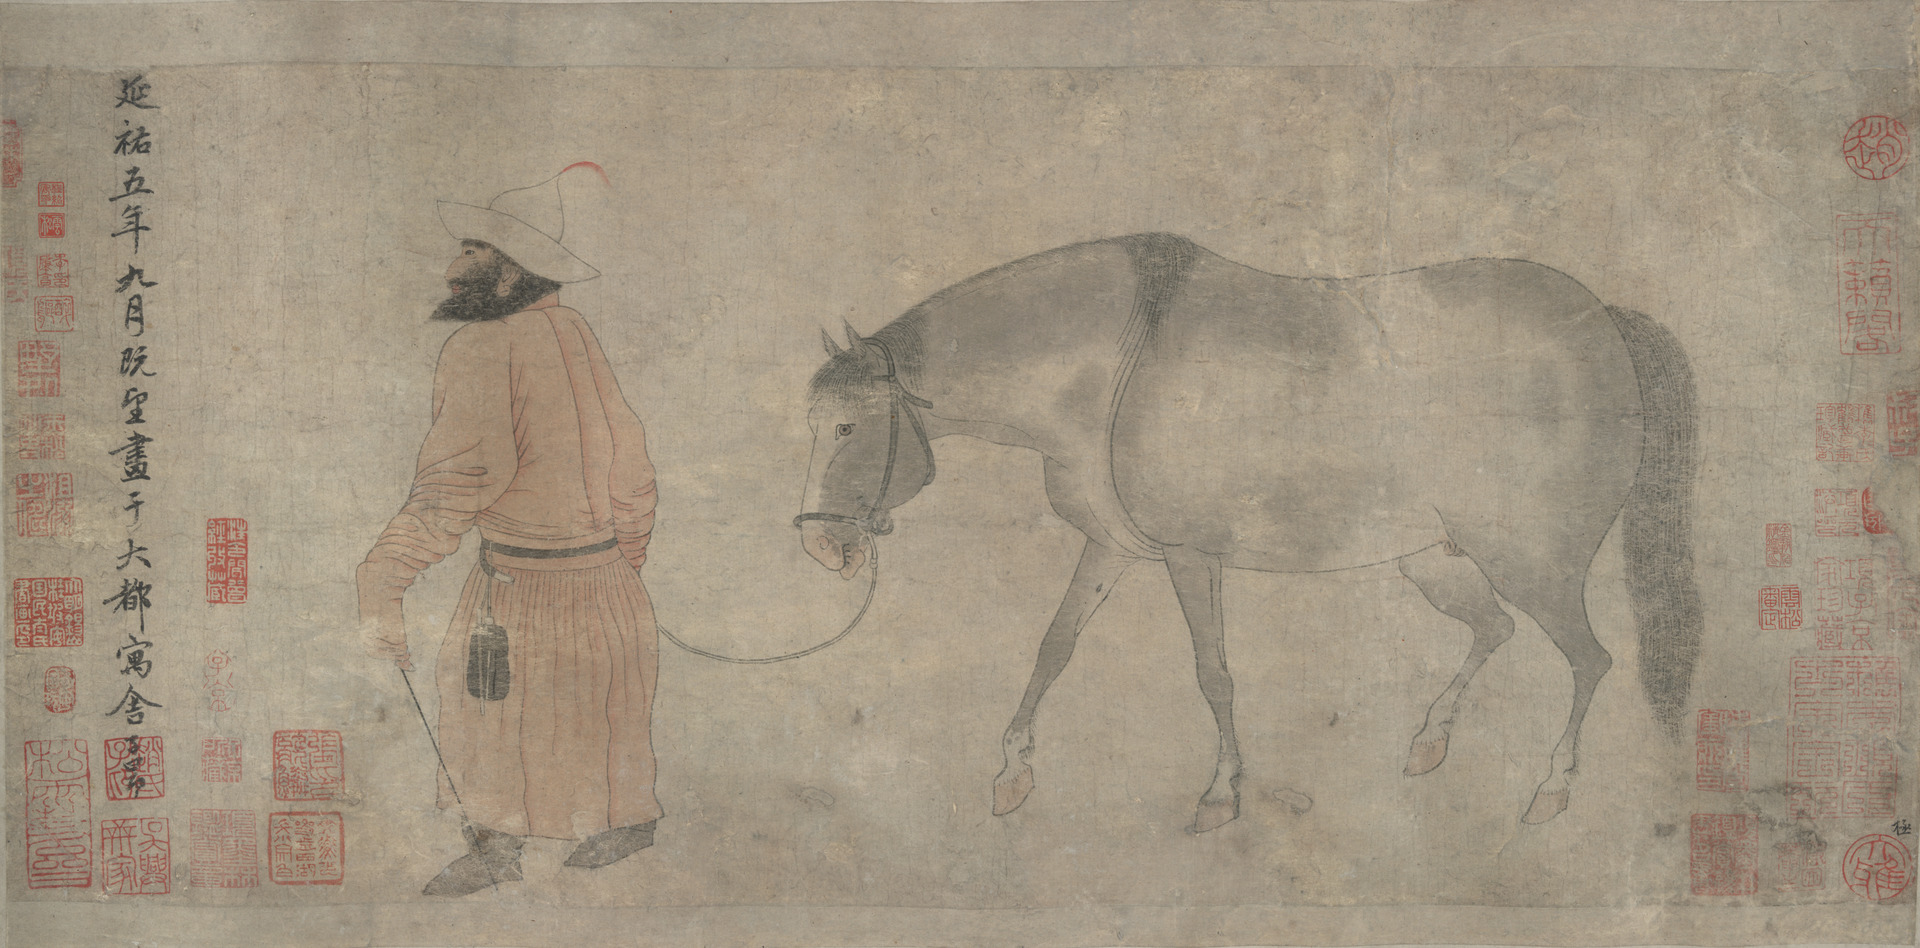 Zhao_Mengfu_-_The_Three_Horse_-_1954.40.